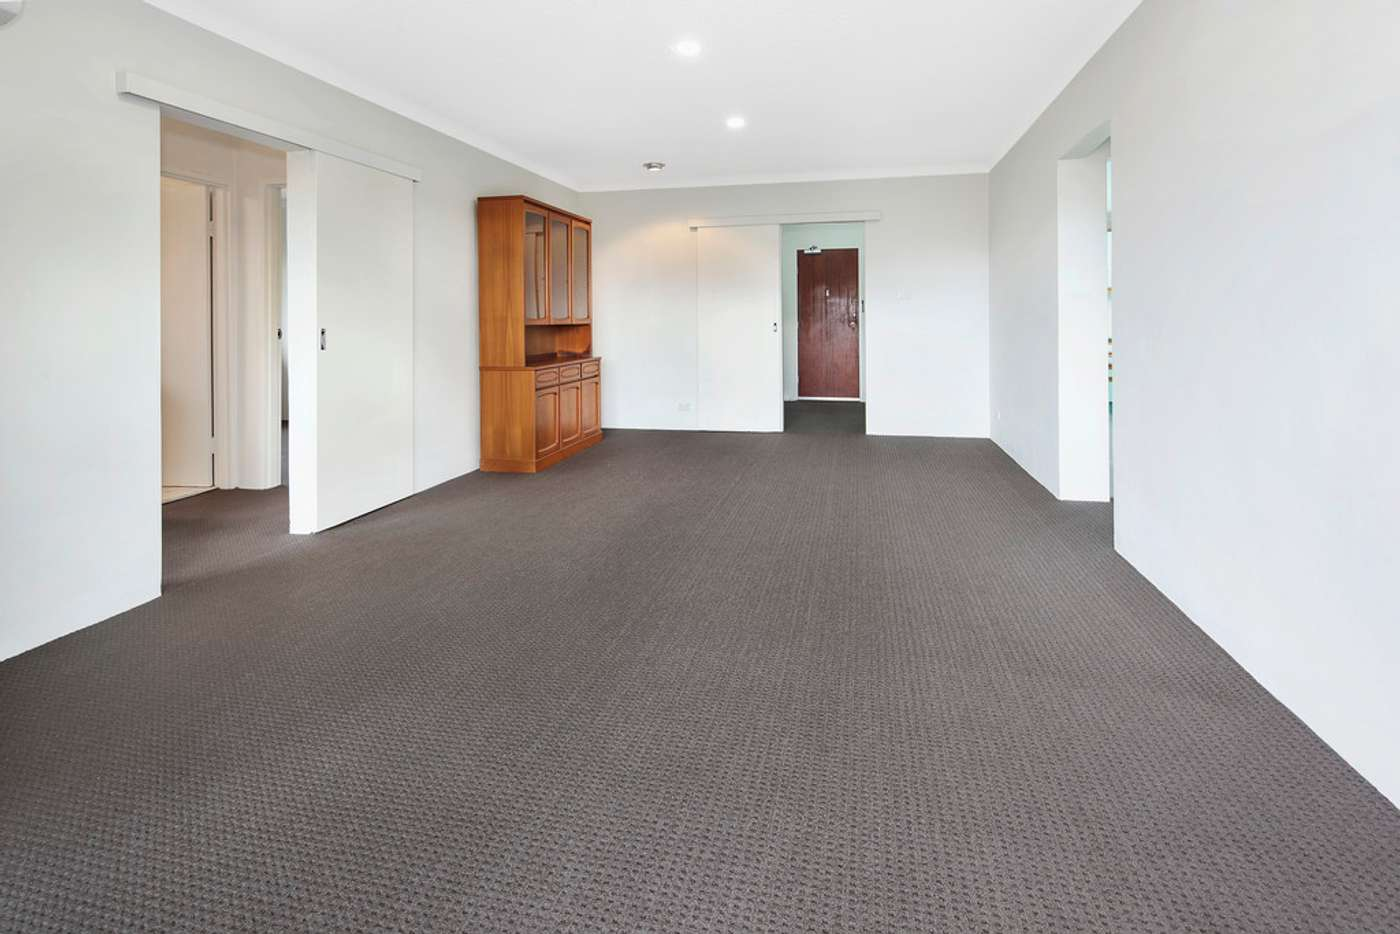 Fifth view of Homely apartment listing, 7/61 REGATTA ROAD, Canada Bay NSW 2046